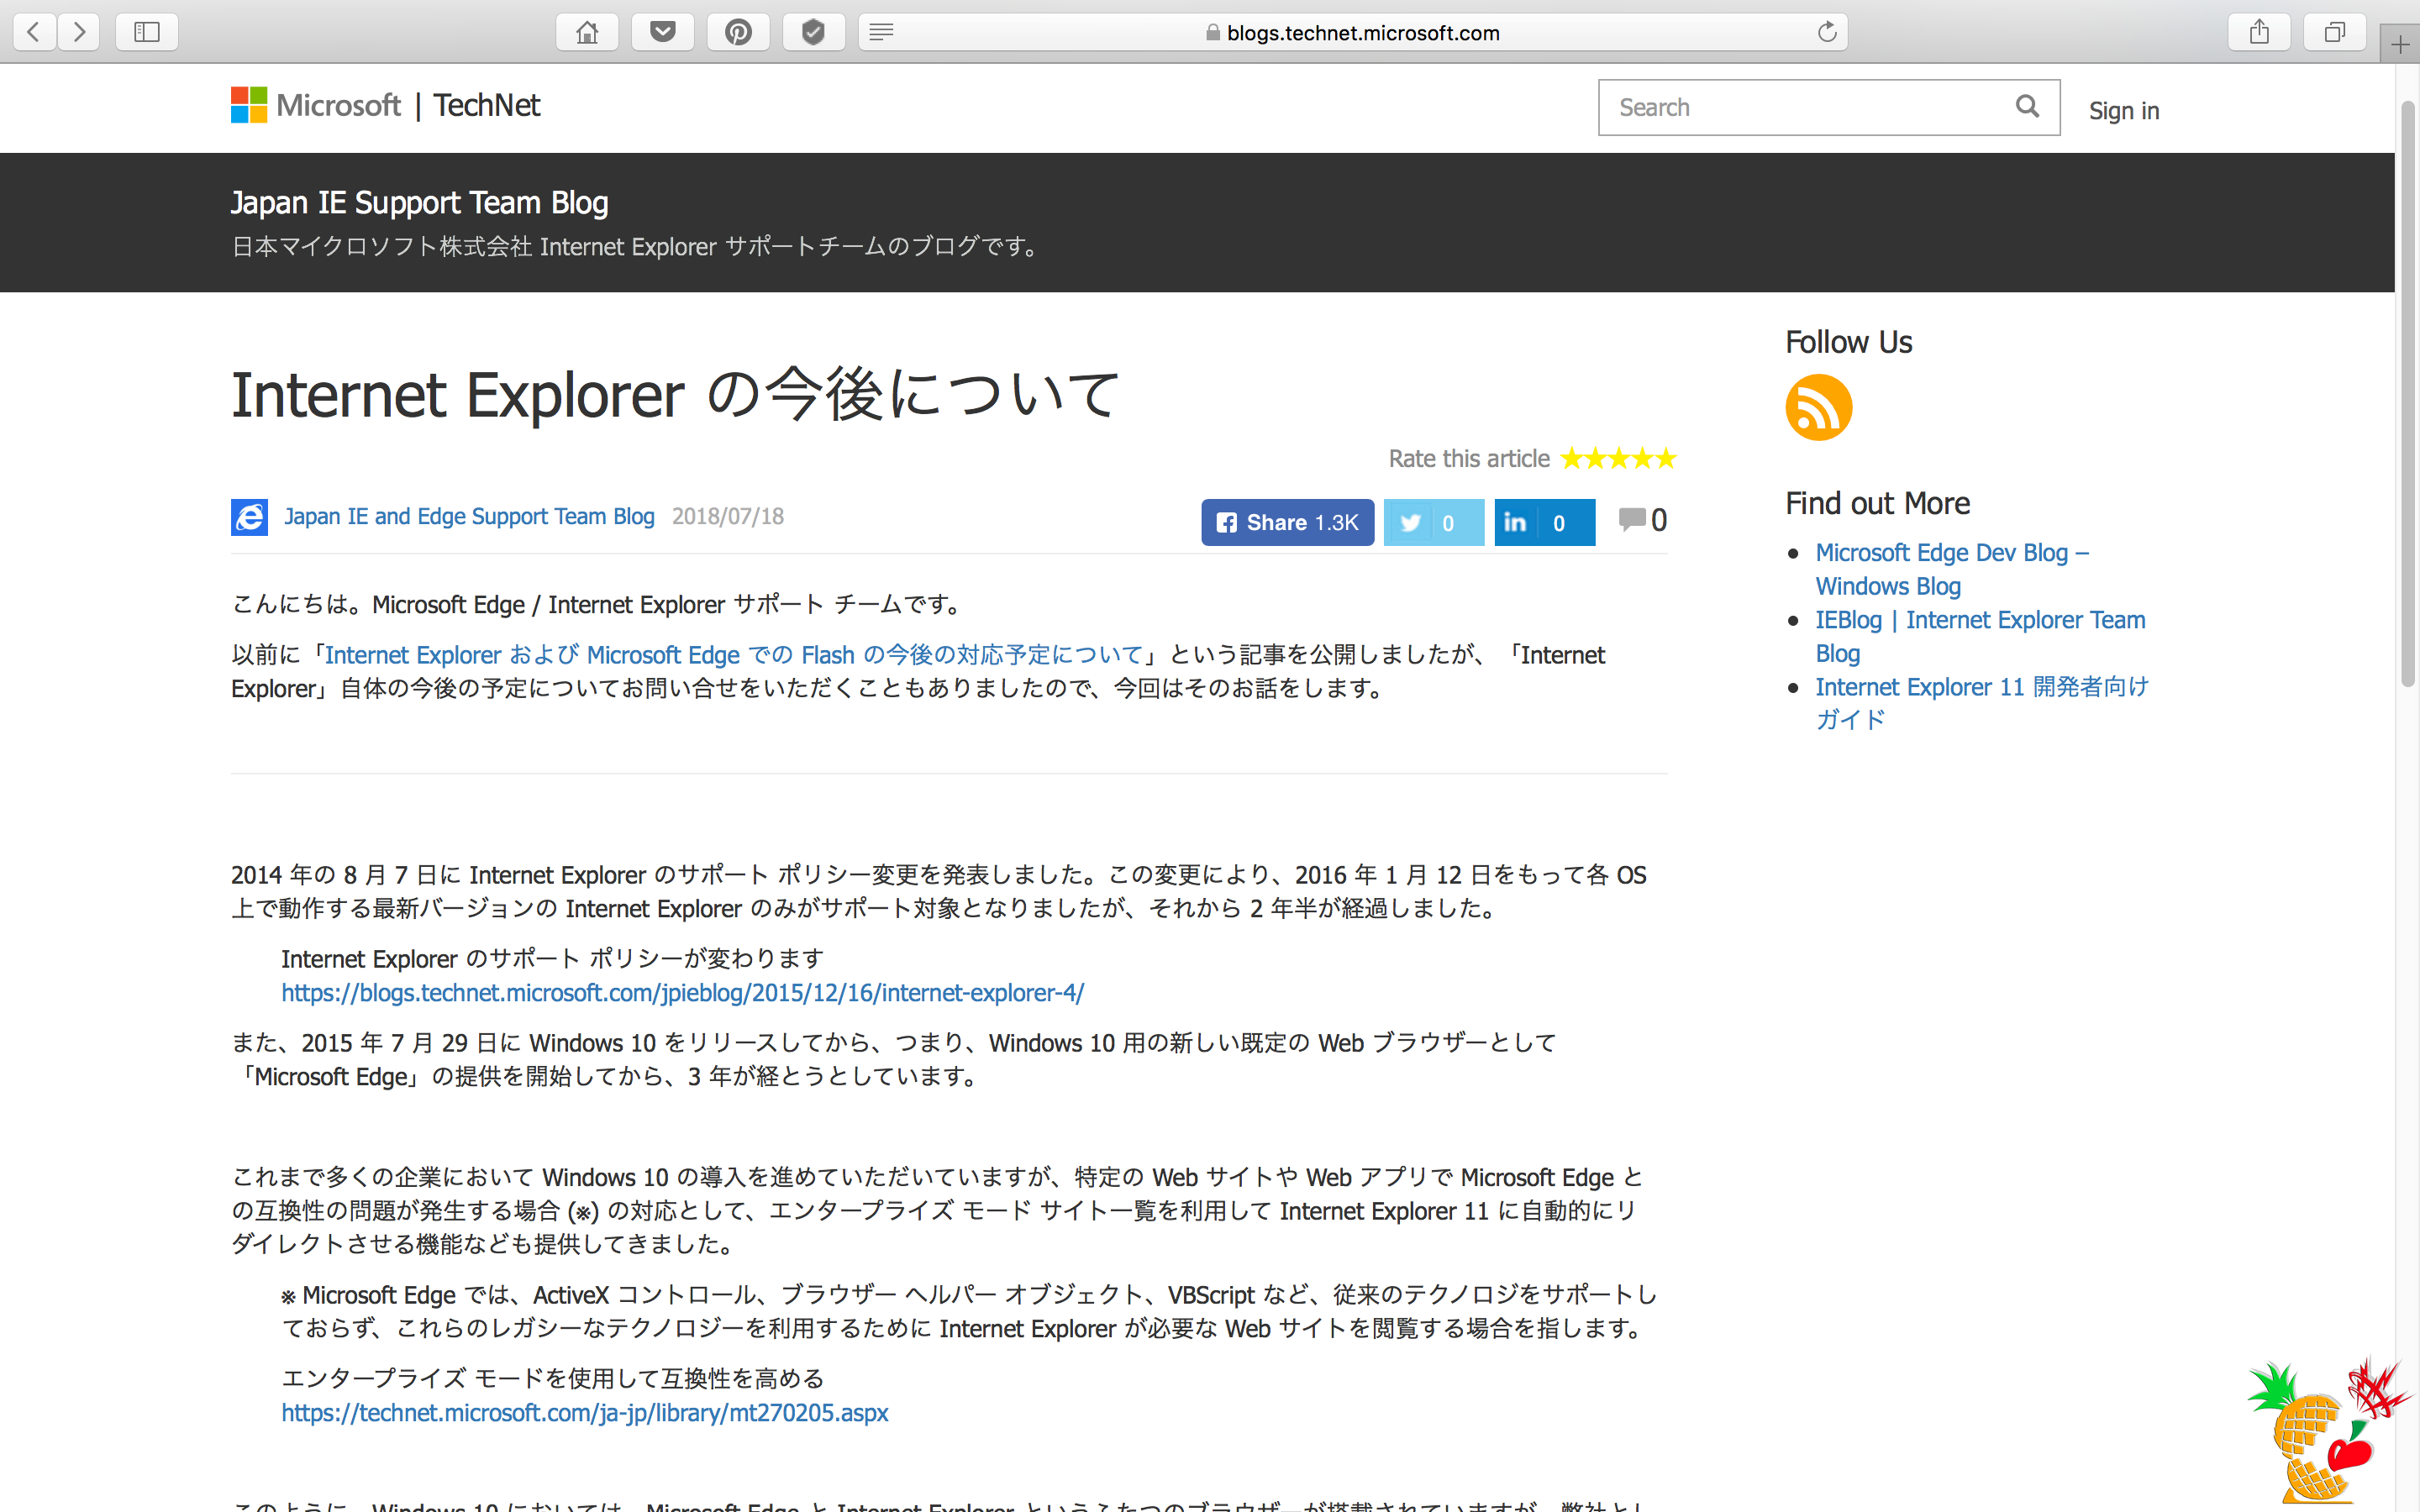 Internet Explorer の今後について - Japan IE Support Team Blog